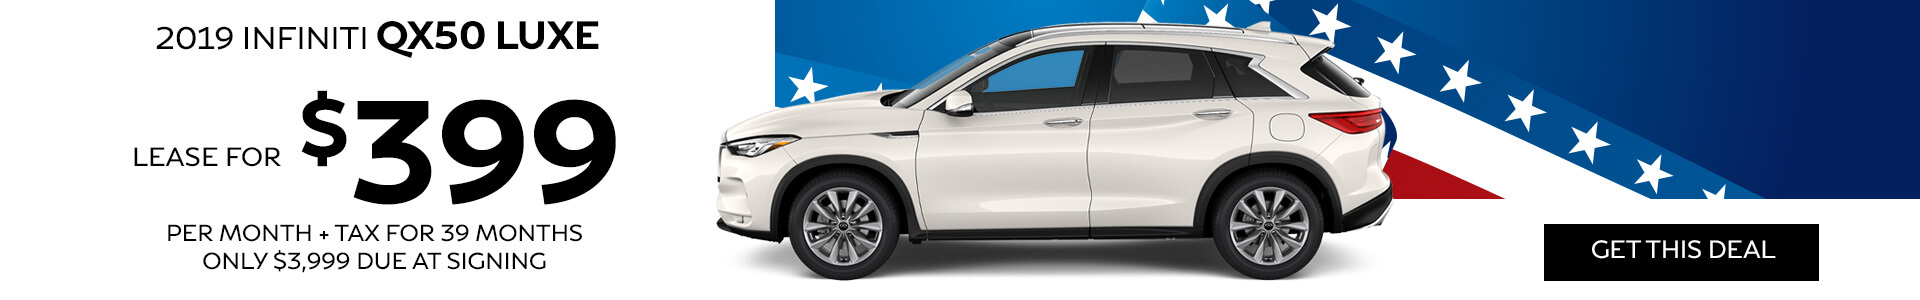 2019 QX50 - Lease for $399